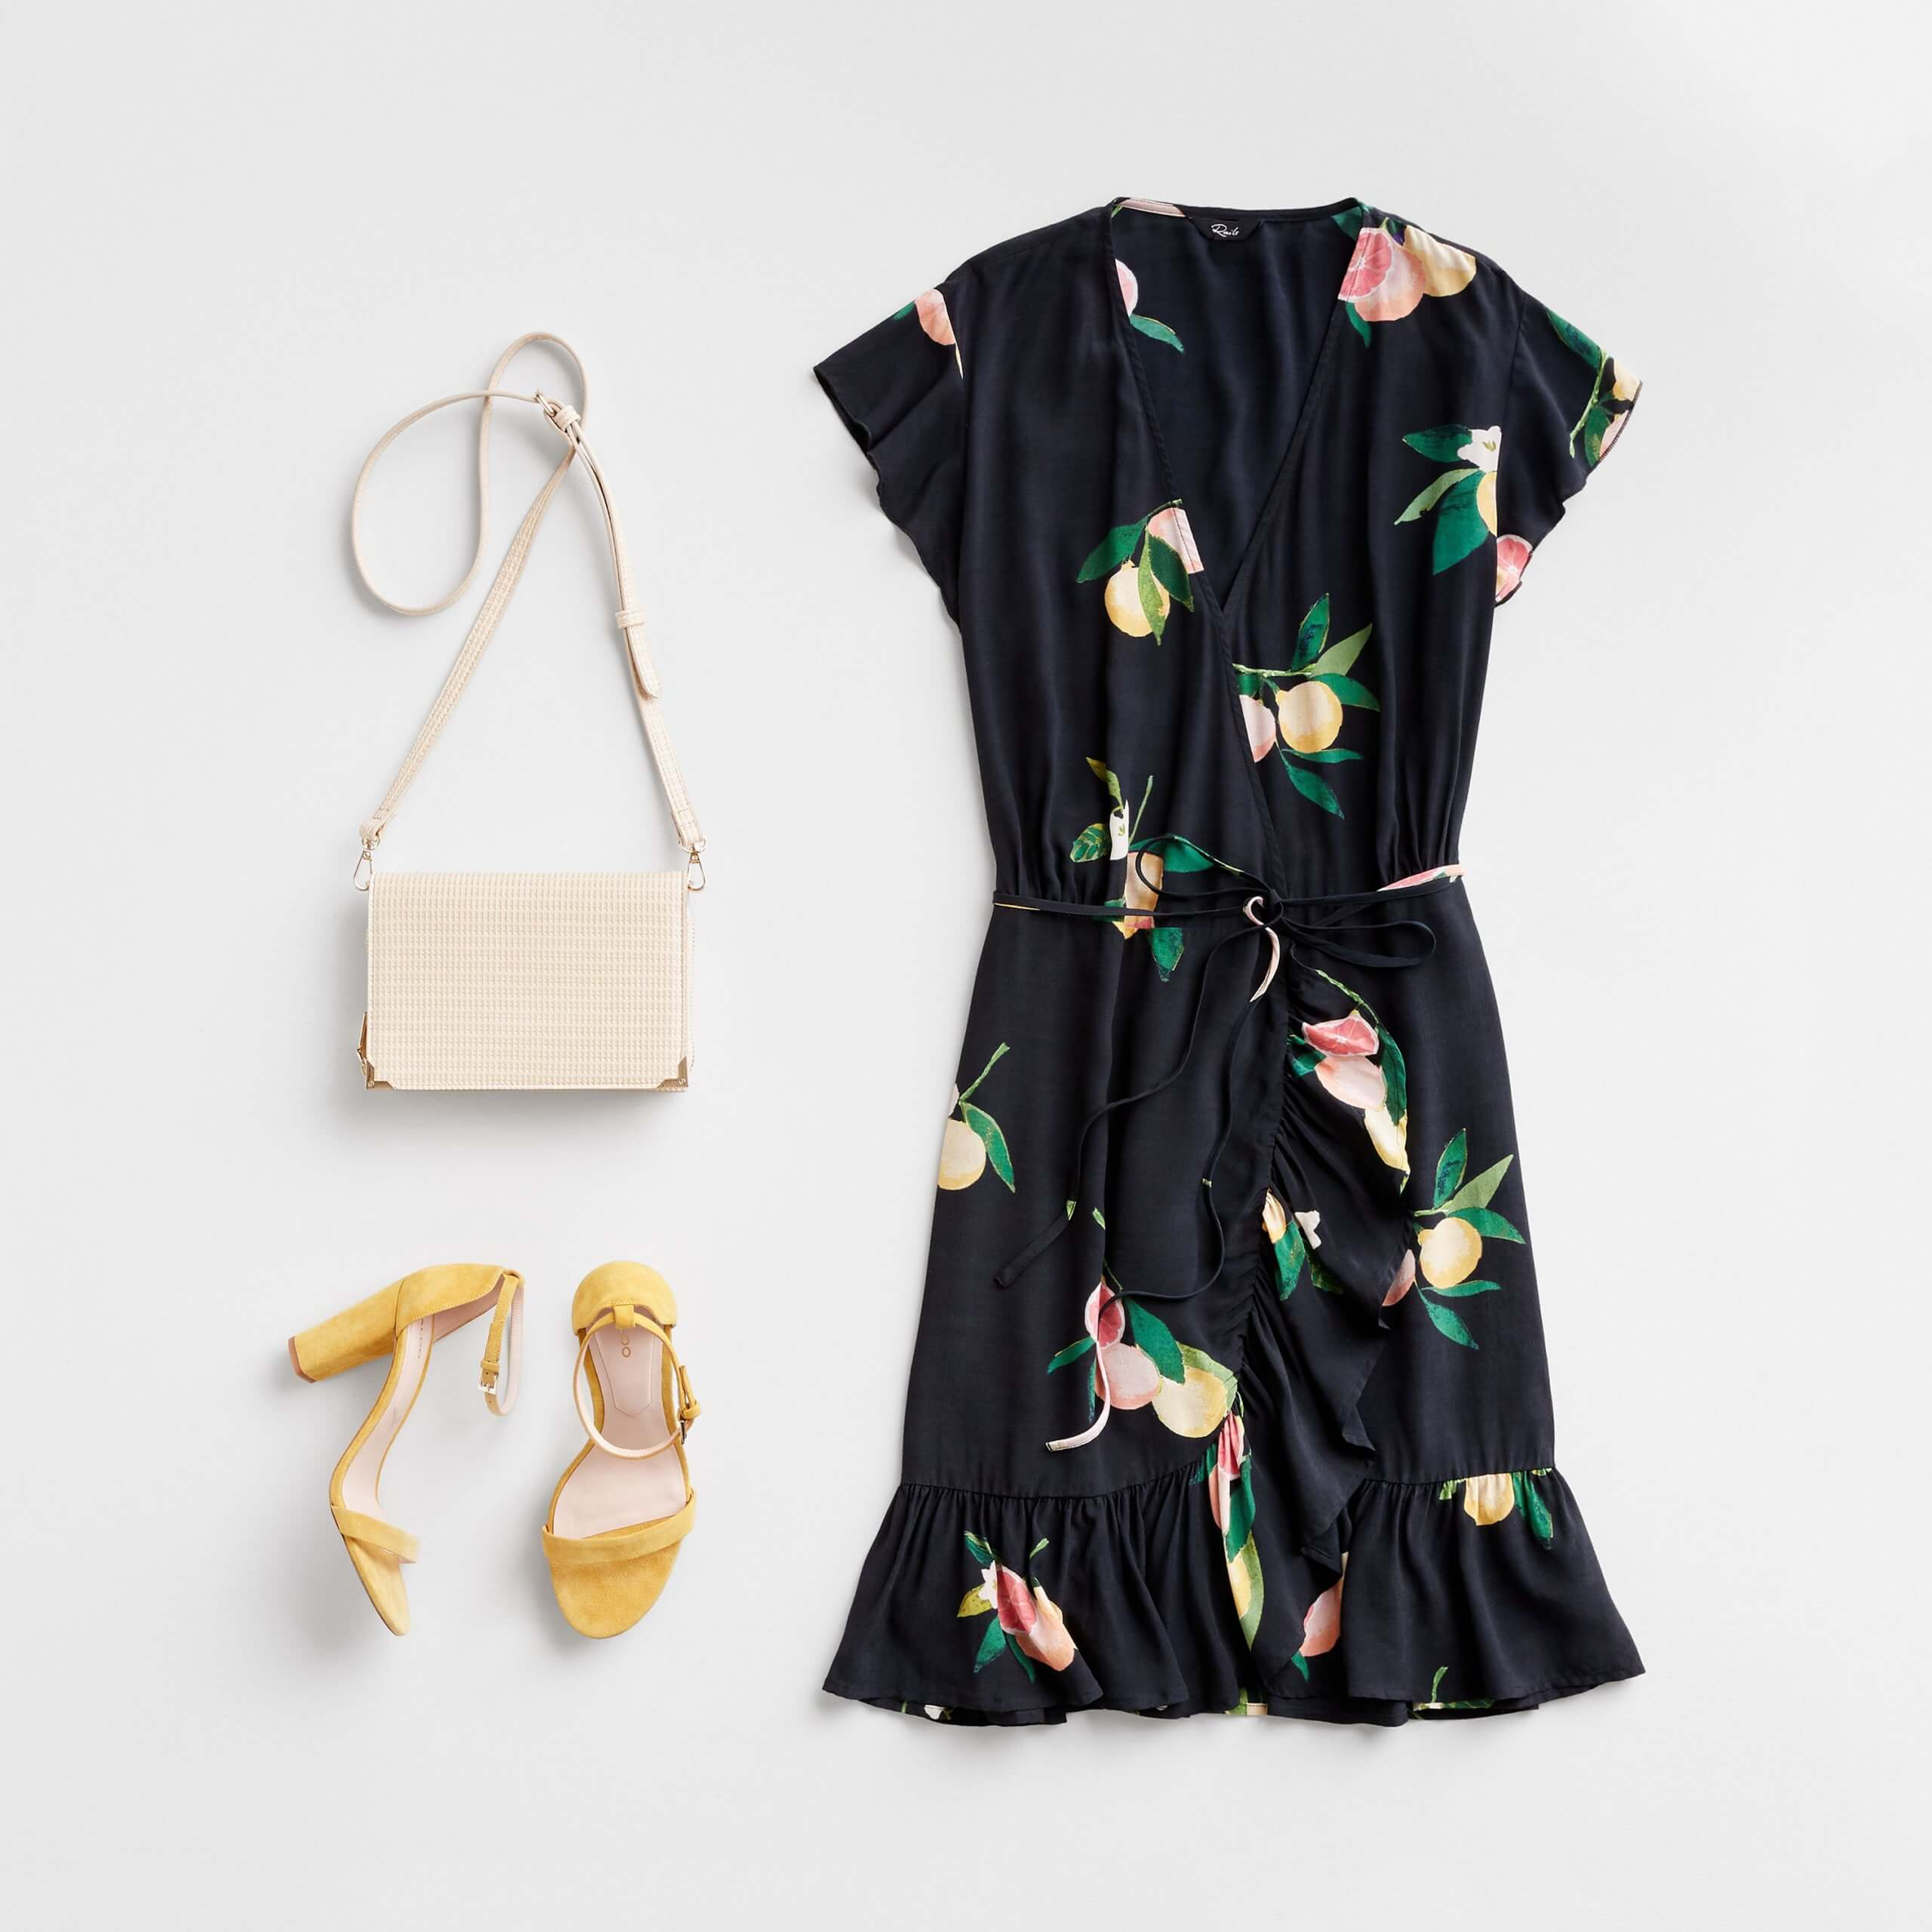 Stitch Fix Women's outfit laydown featuring black lemon-printed wrap dress with yellow block heels and cream crossbody bag.